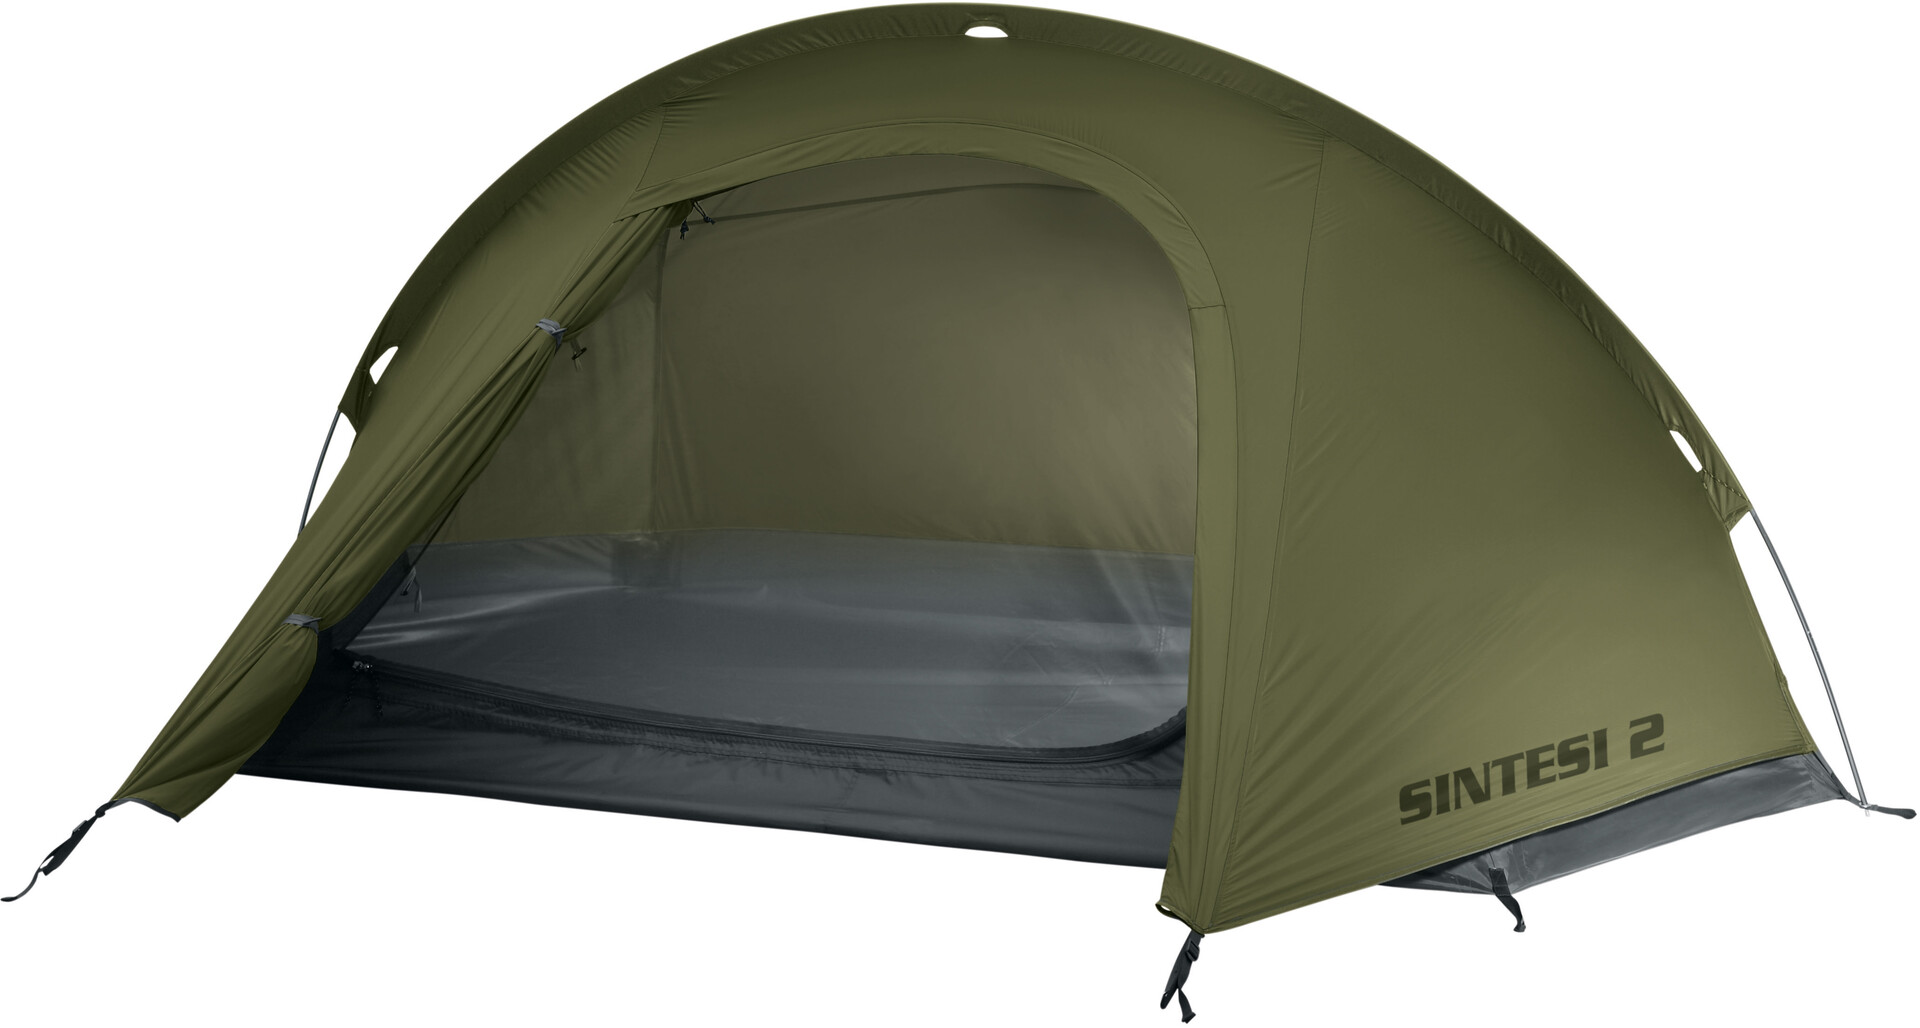 camping telte 2 personer